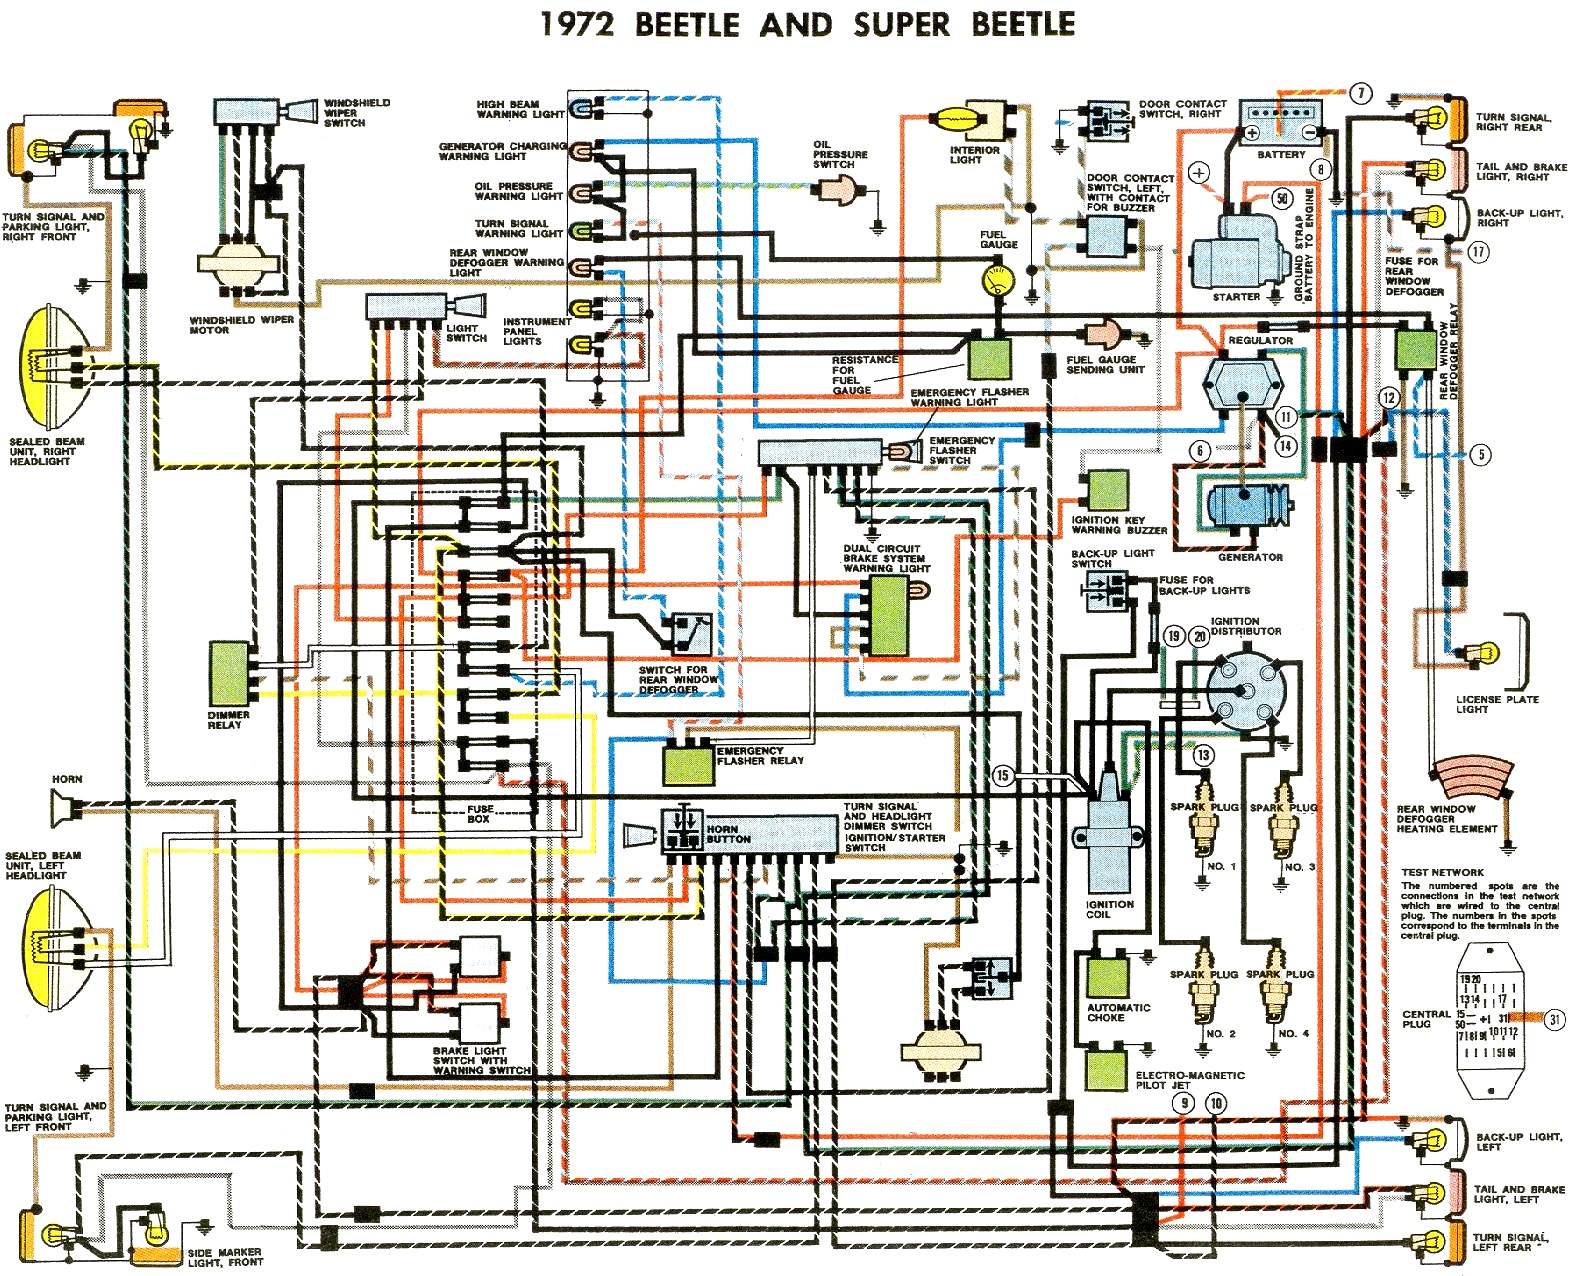 bug_72 1972 beetle wiring diagram thegoldenbug com 1973 vw beetle wiring diagram at readyjetset.co